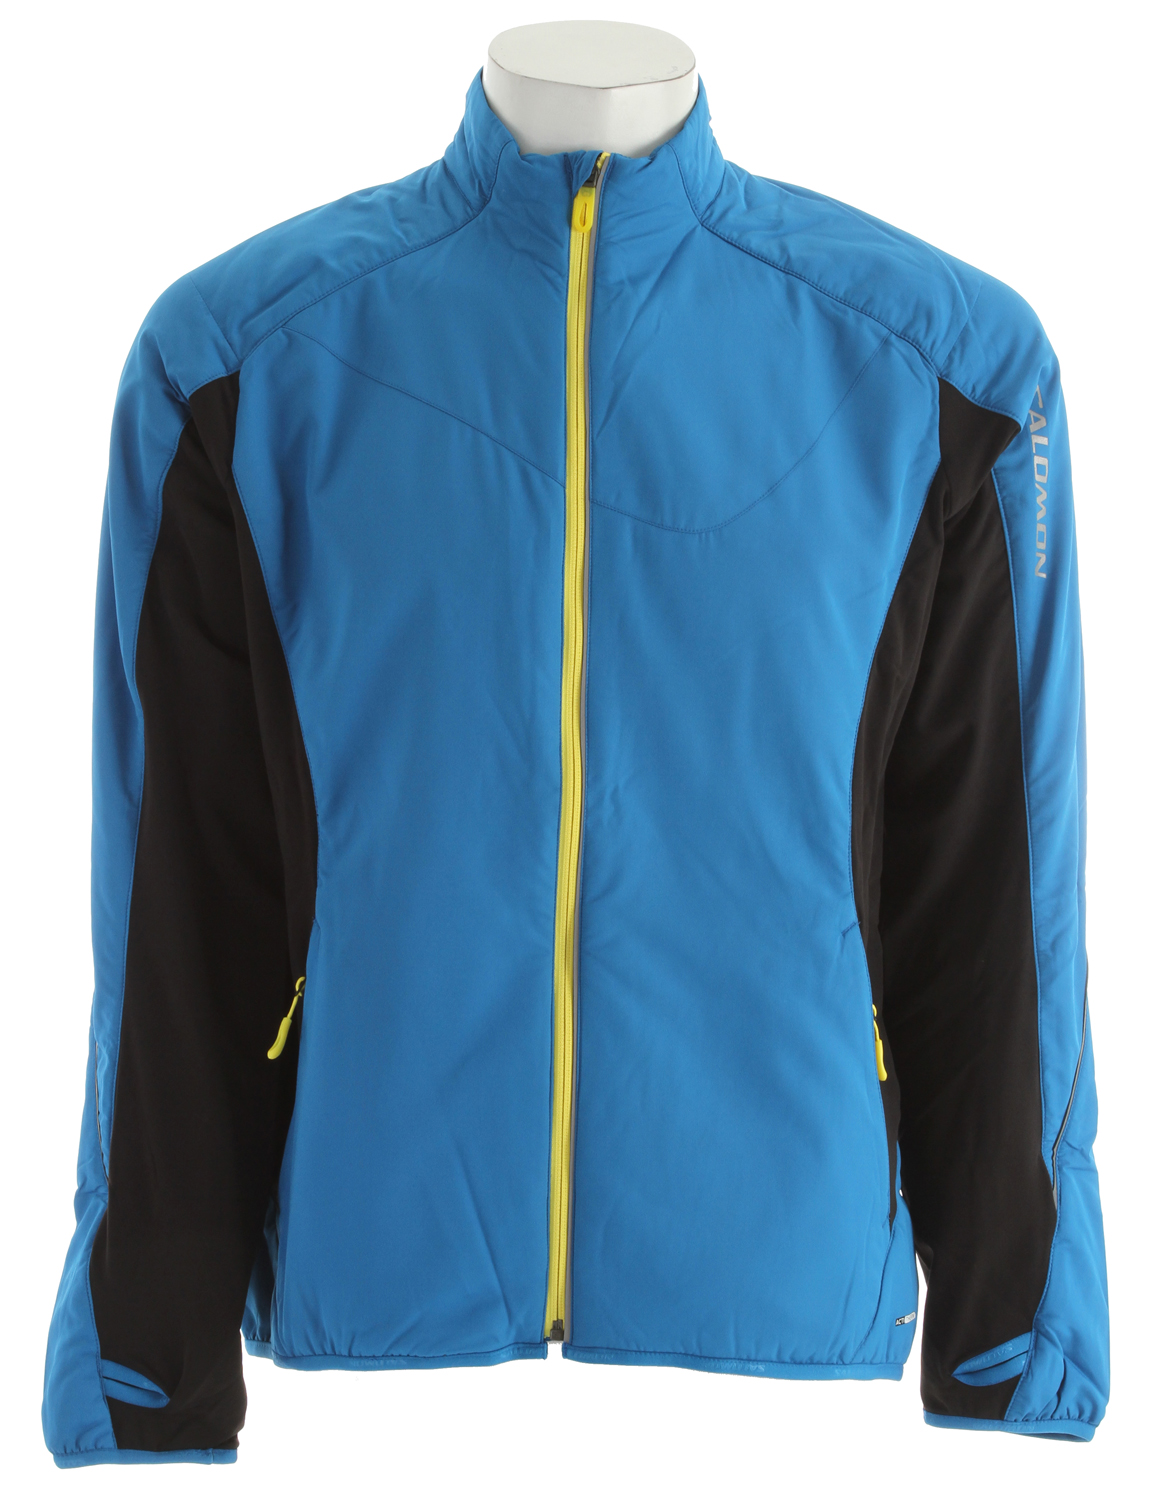 Camp and Hike Key Features of the Salomon Super Fast II Jacket: Breathable polyester blend shell (Main body) polyester / (panels) 82% nylon/18% elastane Polyester lining 1 lb. 2.3 oz. average weight Back length: 29 inches No hood Reflective hits on coat Thumb holes on sleeves 2 zippered front pockets - $69.95